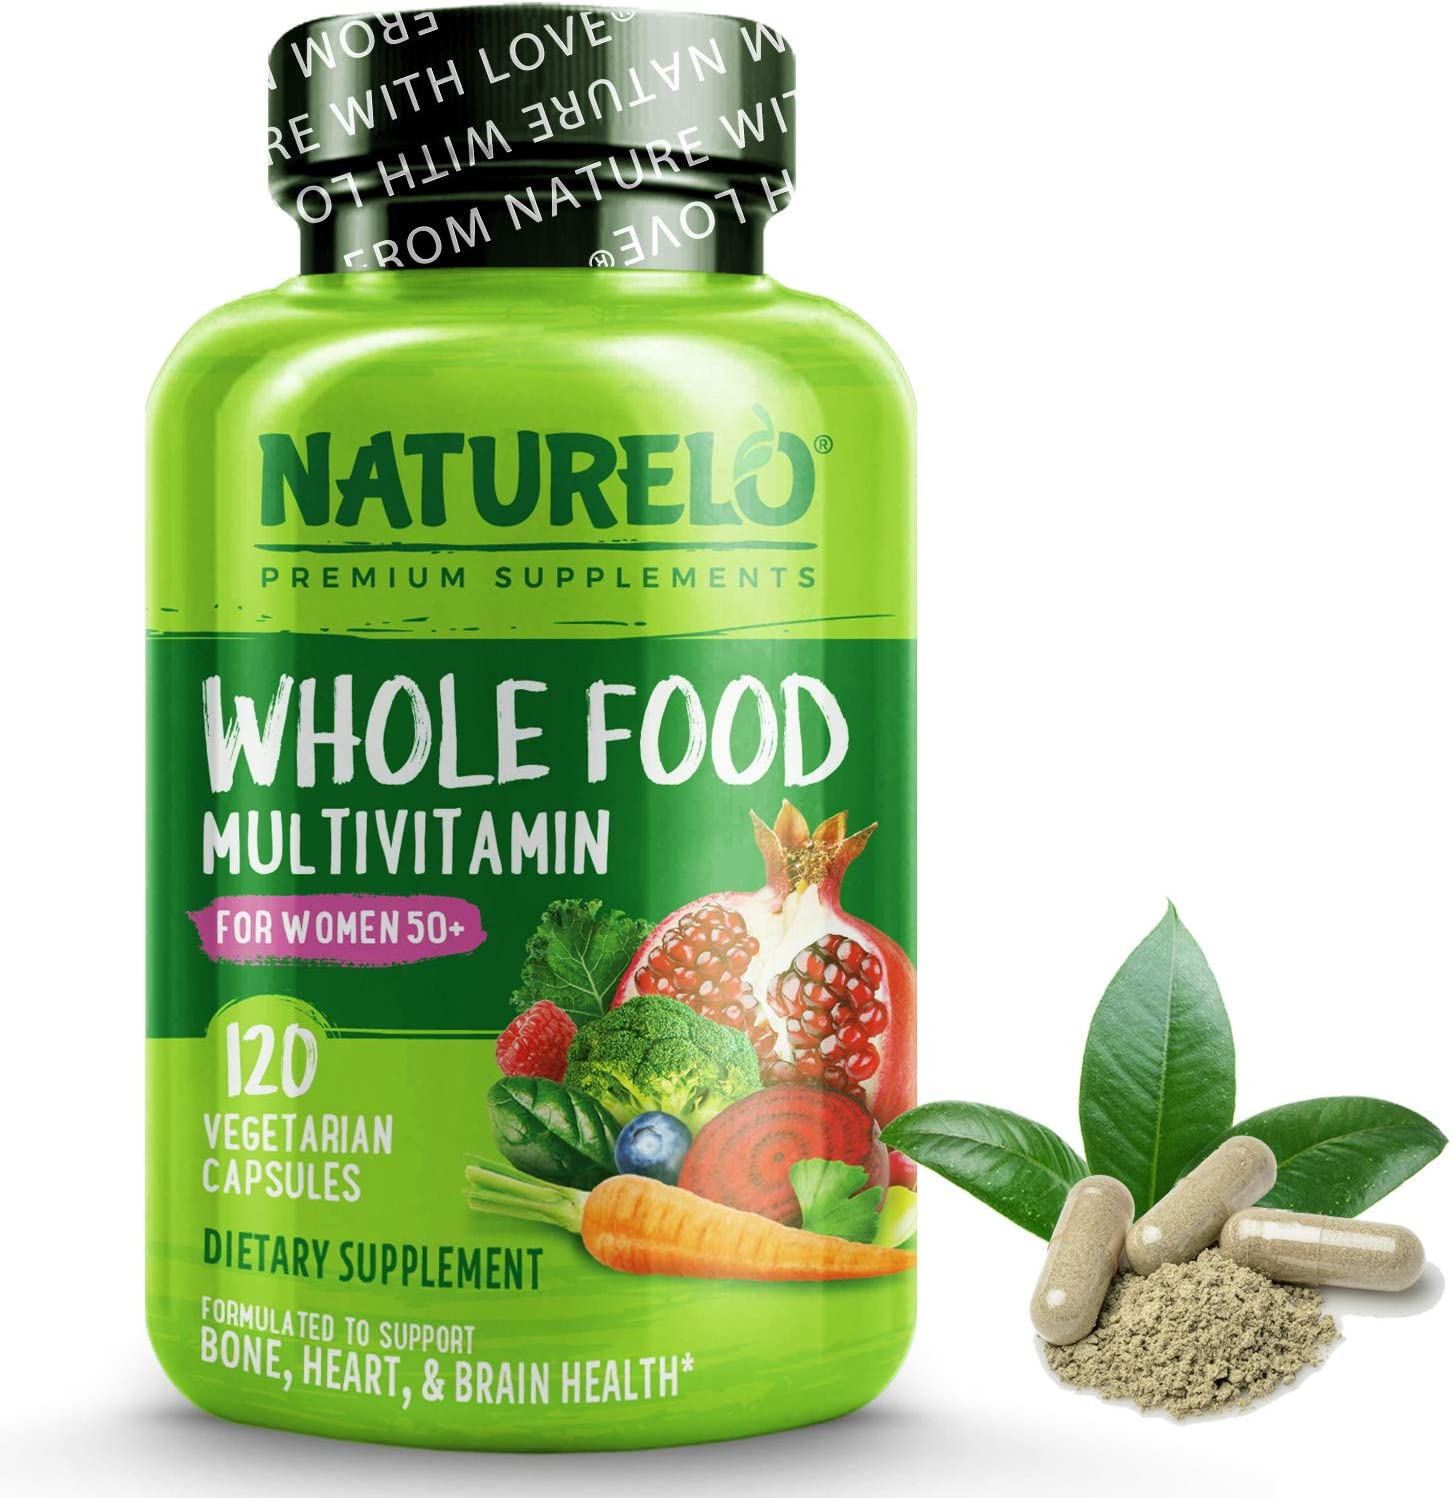 NATURELO Whole Food Multivitamin for with SALENEW very popular! Free 50+ Iron Weekly update Women